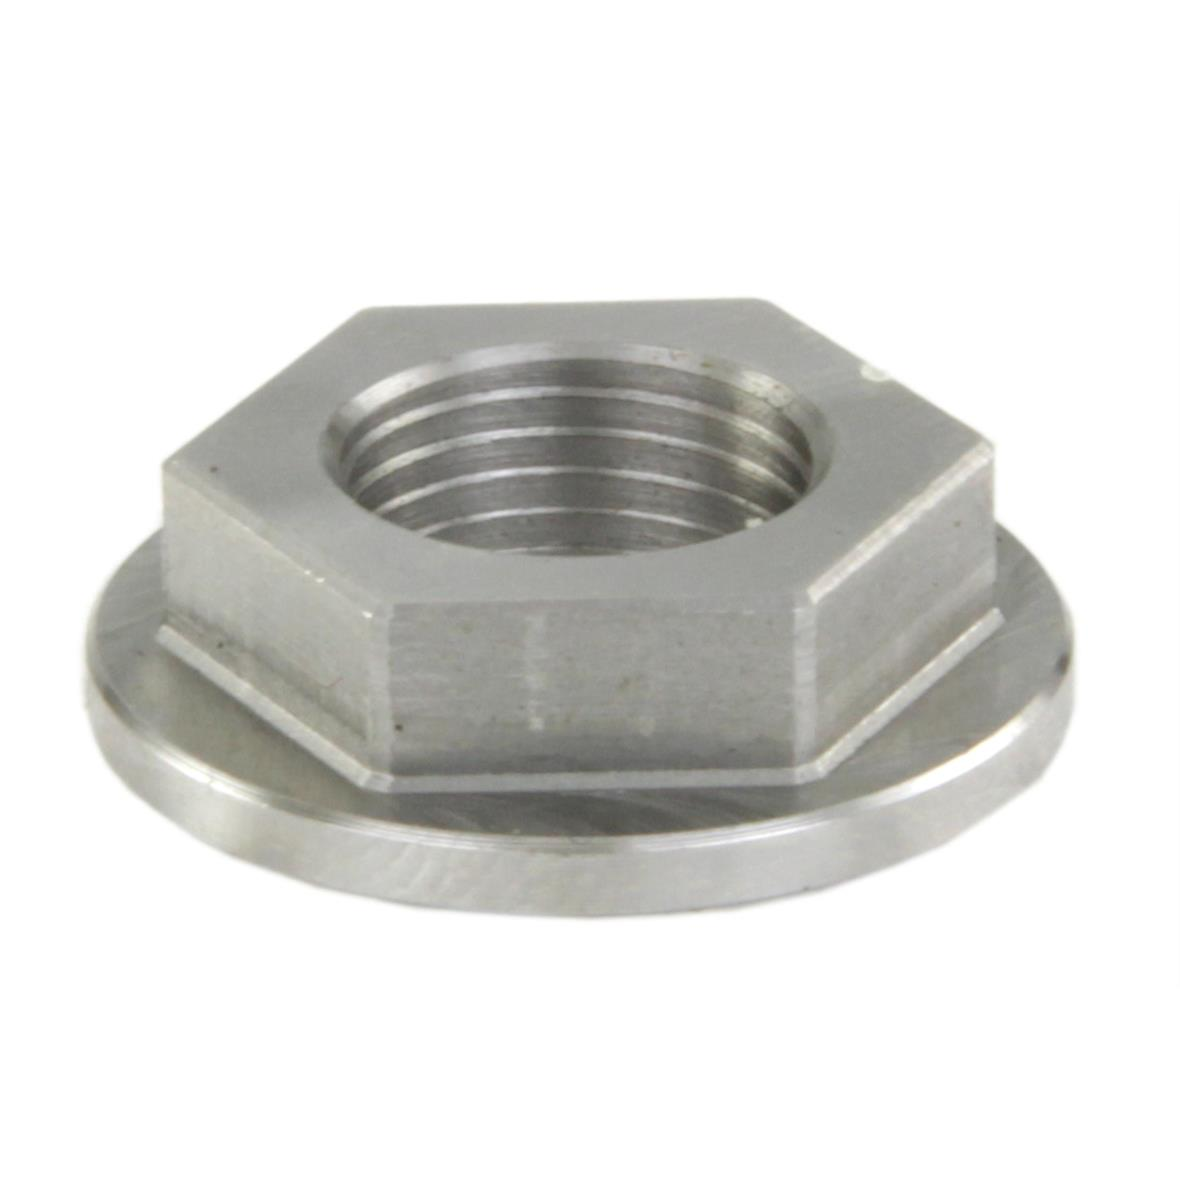 Product Image for 'Nut M11x1 mm hexagonal, input shaft DRTTitle'